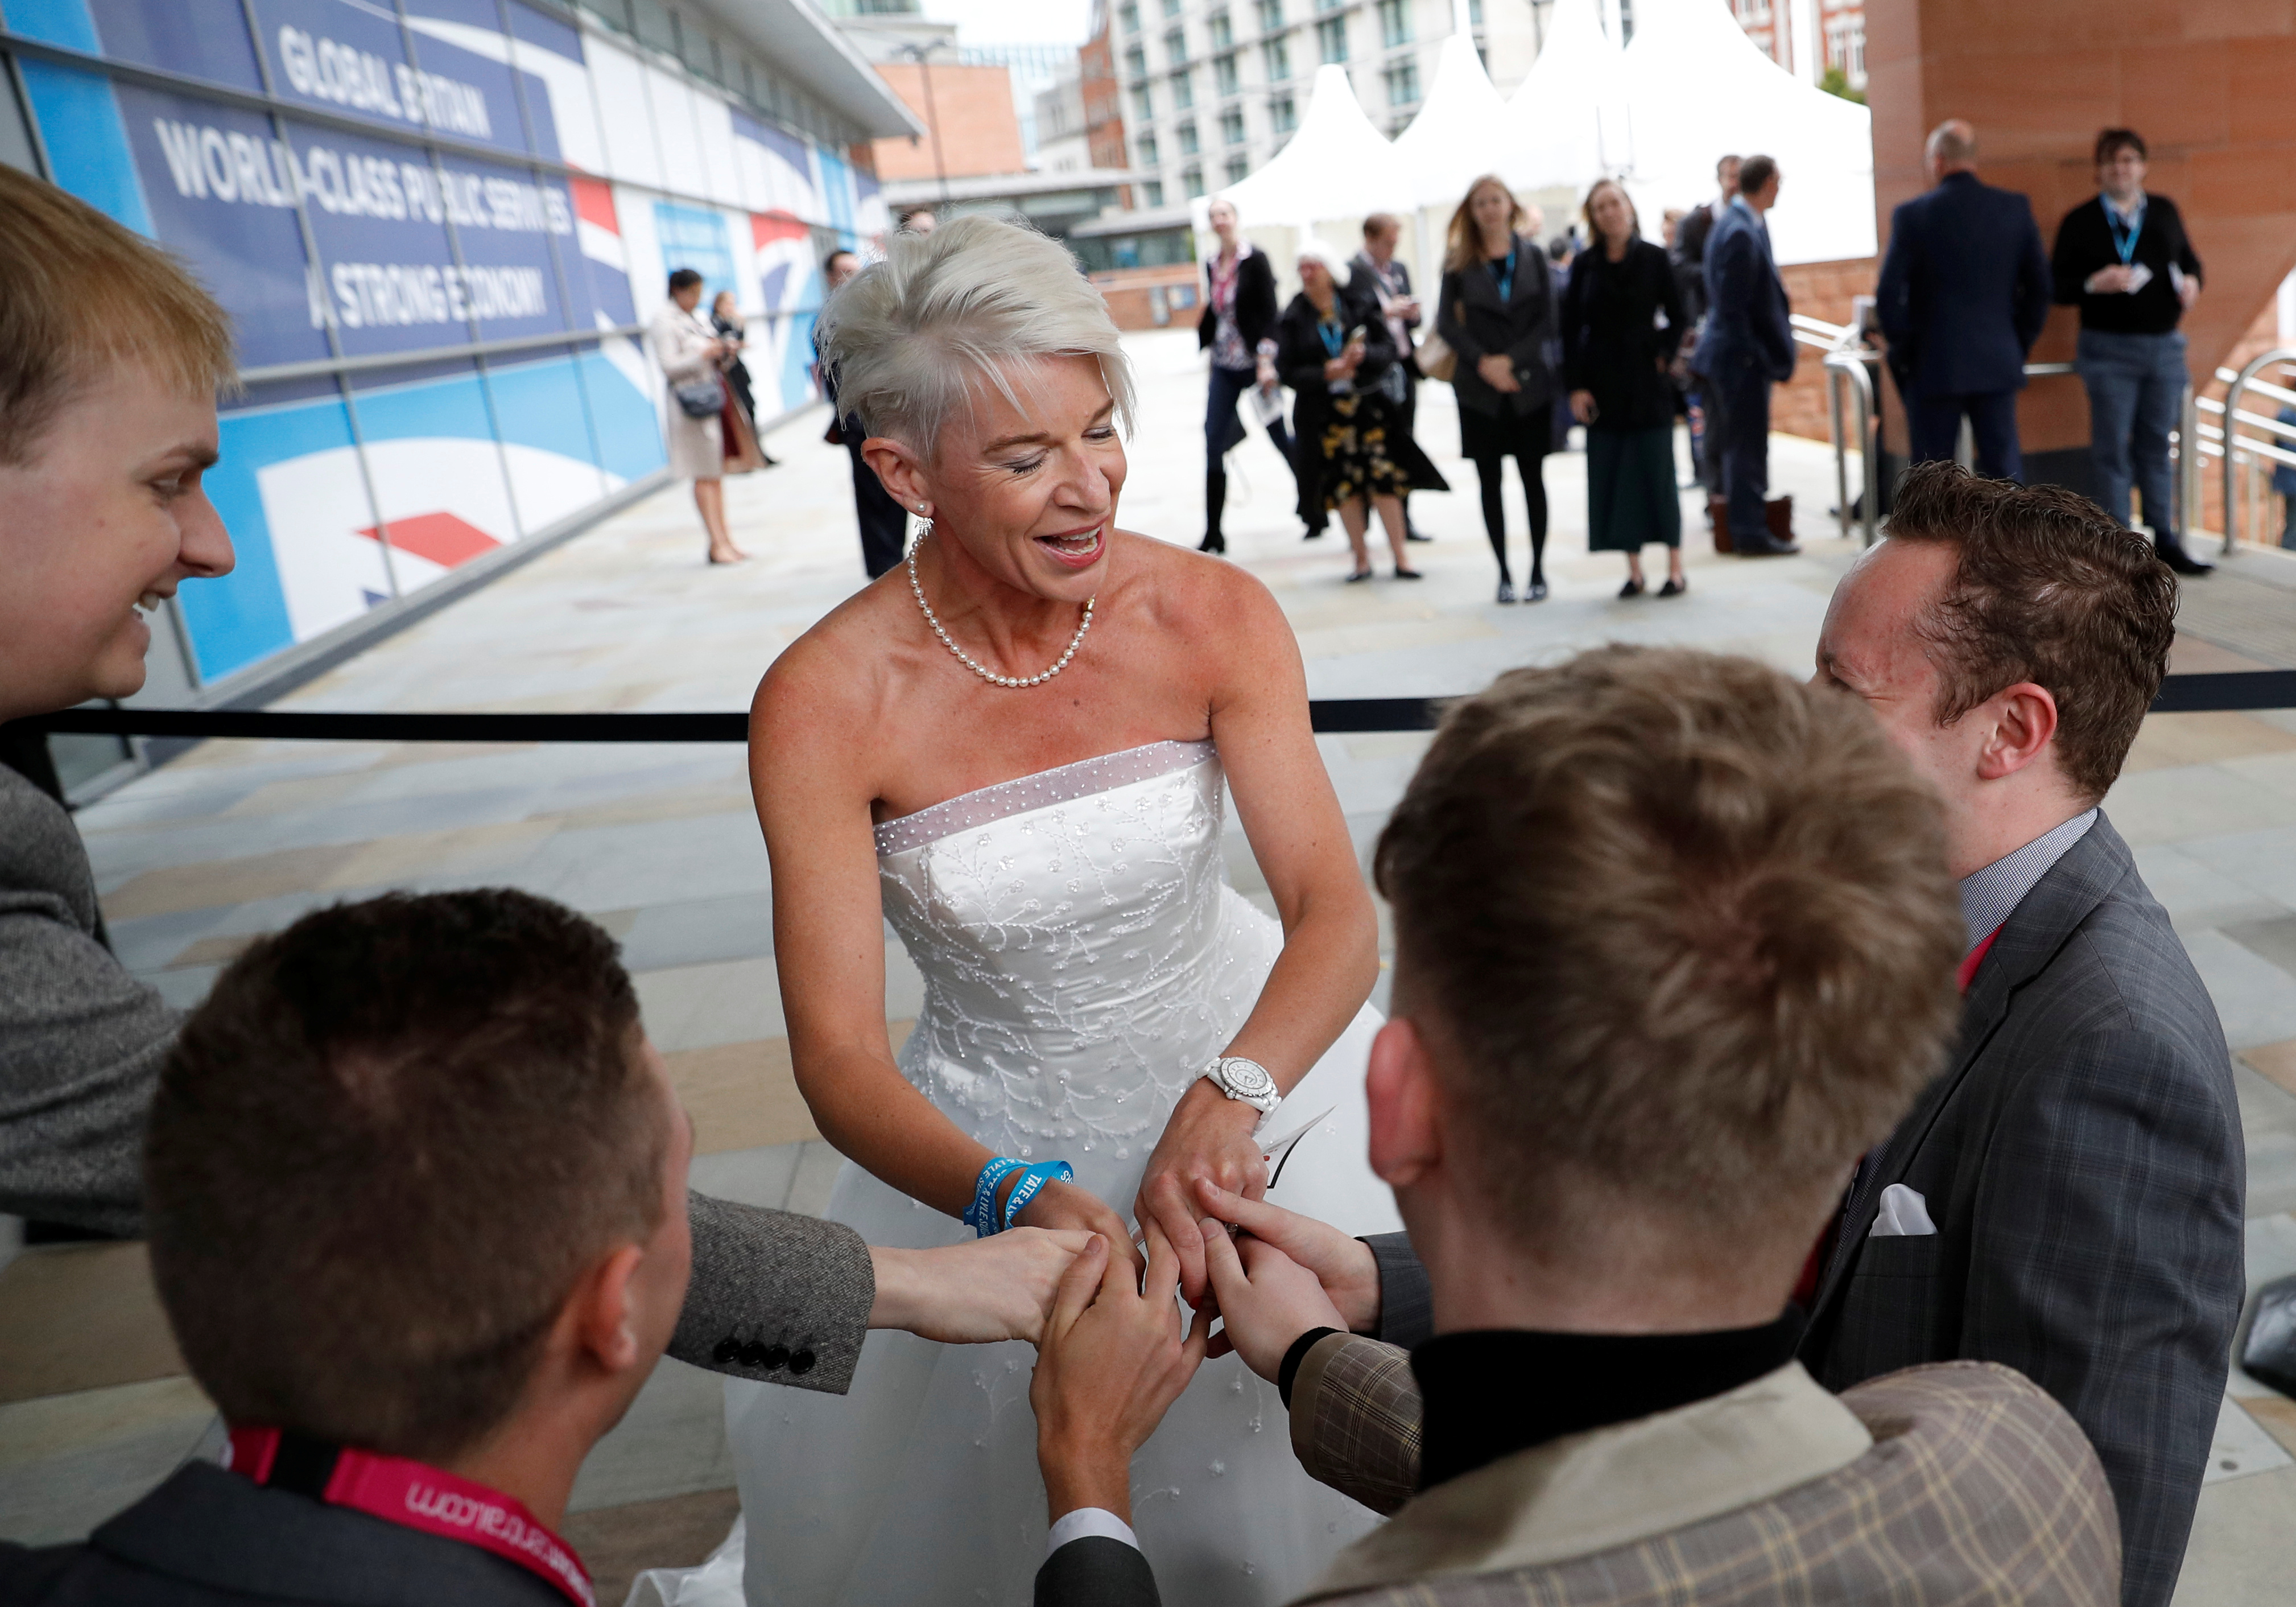 Newspaper columnist Katie Hopkins arrives dressed in a wedding dress at the Conservative Party's conference in Manchester, Britain October 2, 2017. REUTERS/Phil Noble